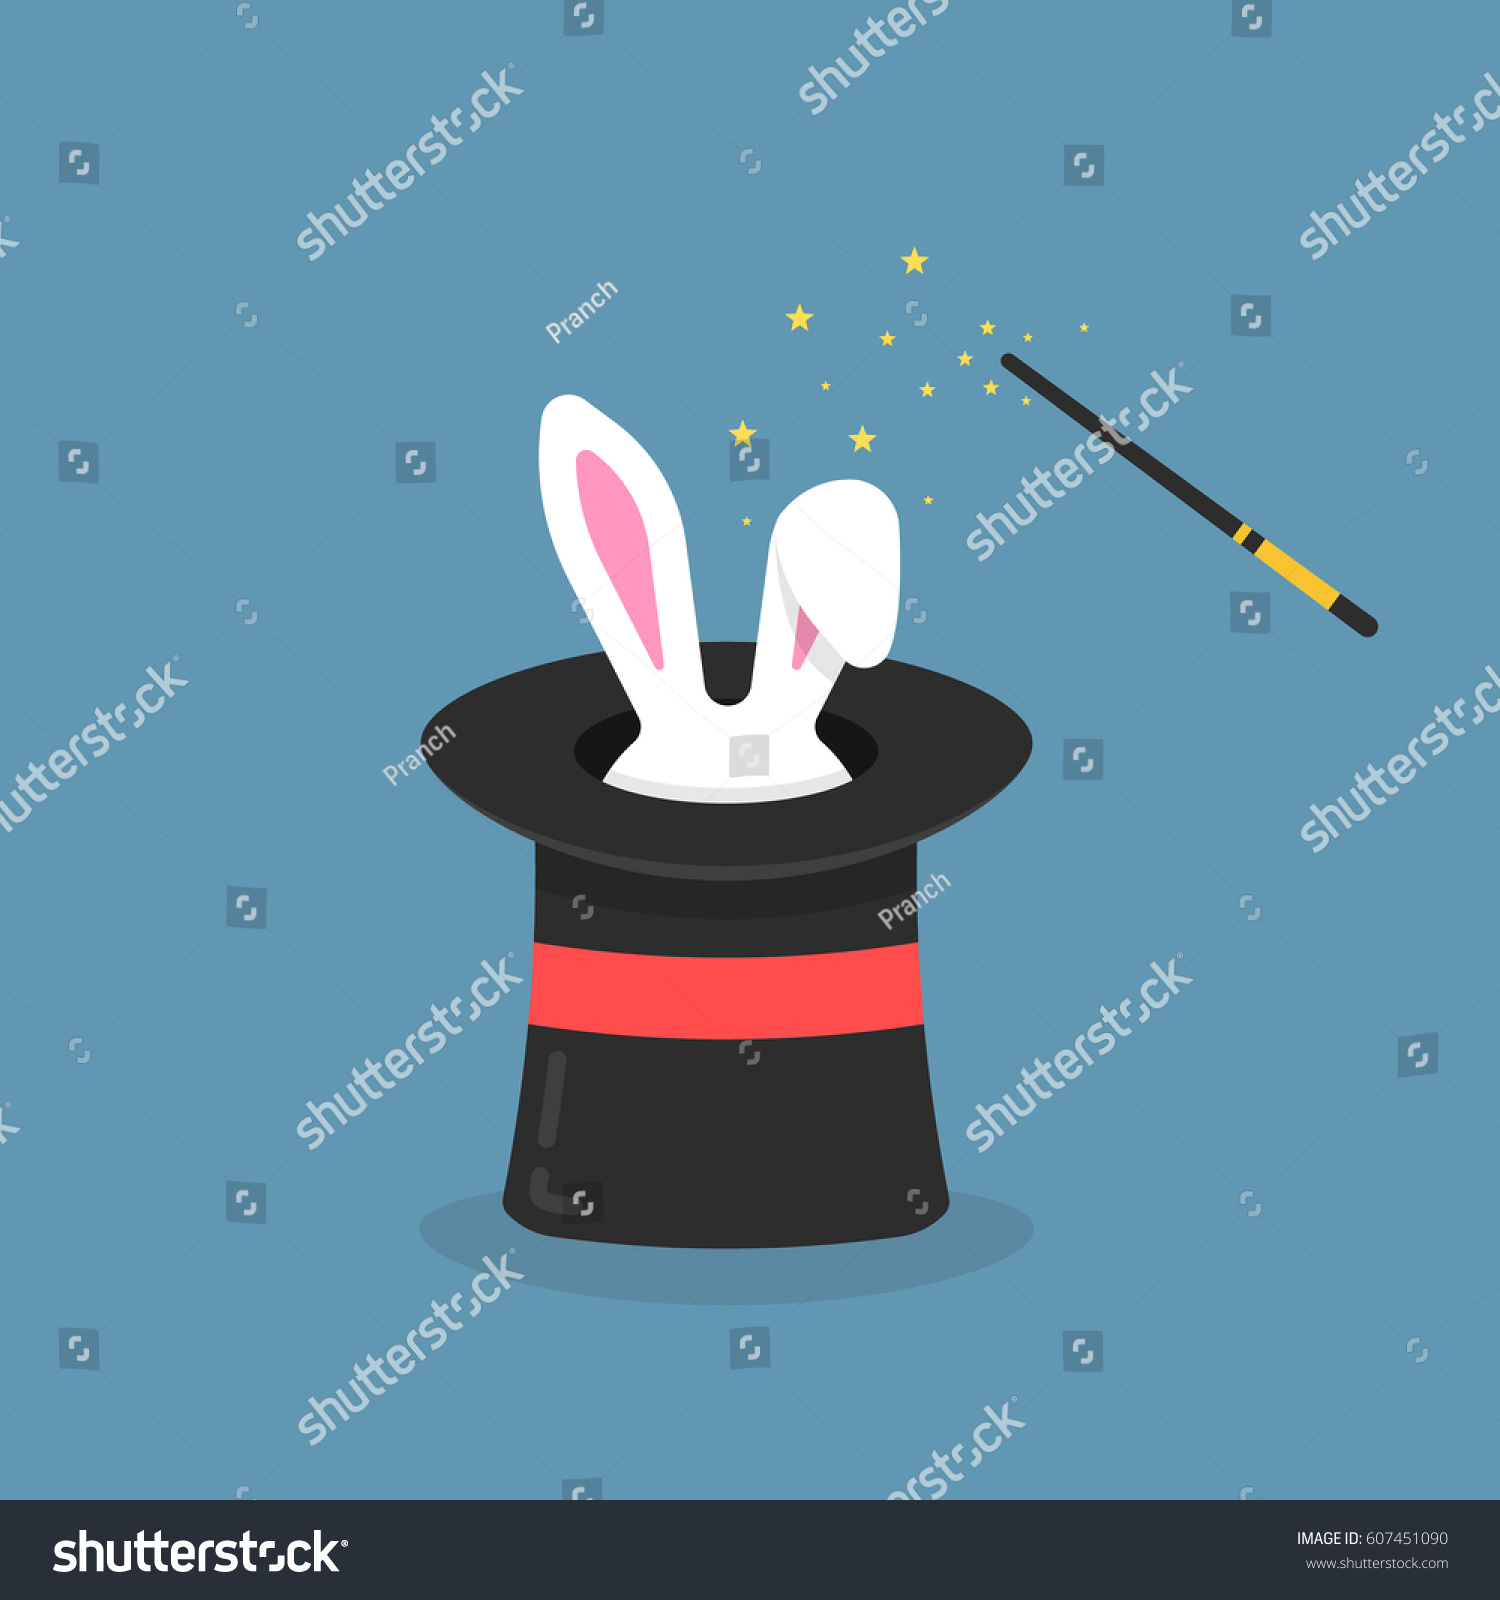 Black Magic Hat With Bunny Ears Entertainment Party Or Beautiful Circus Show Concept Imagination